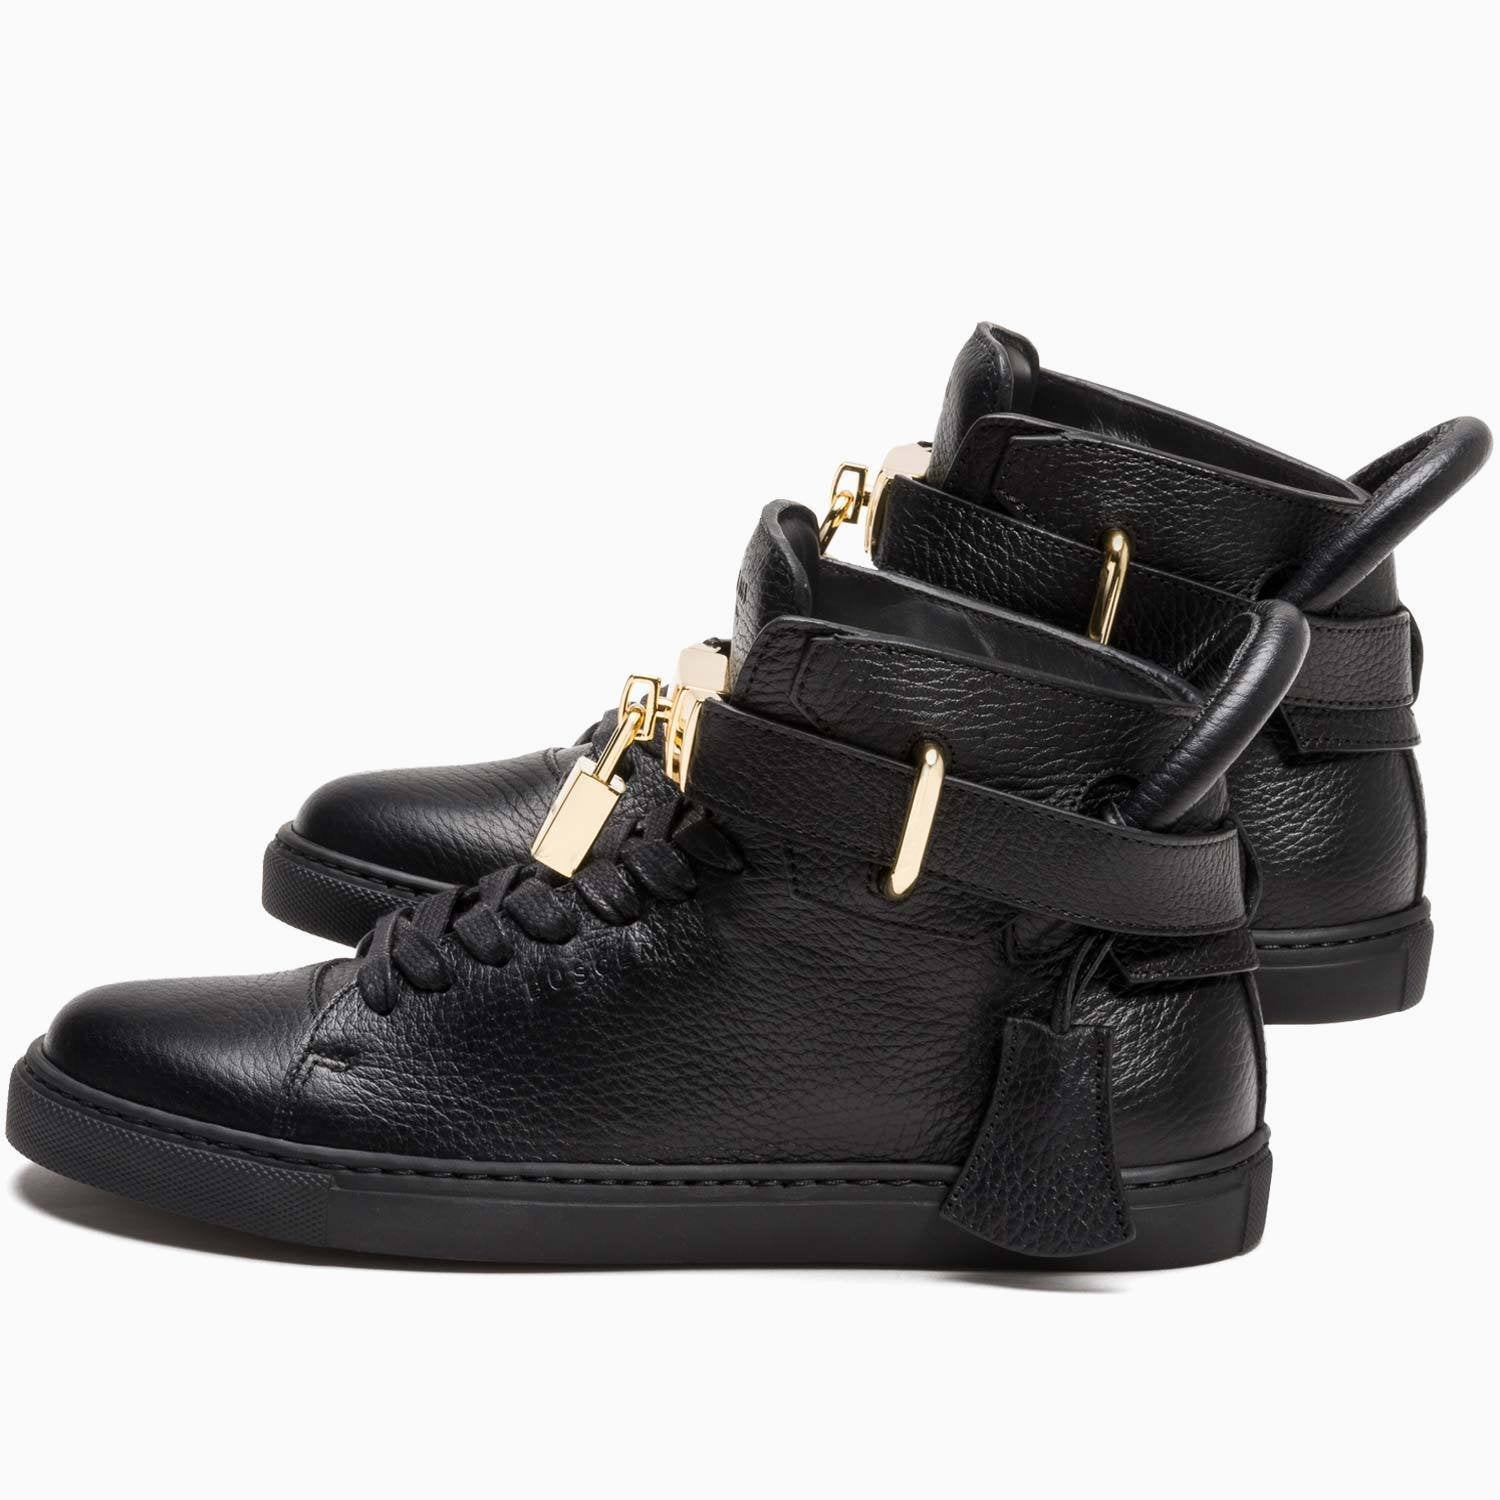 100MM | Black-Buscemi